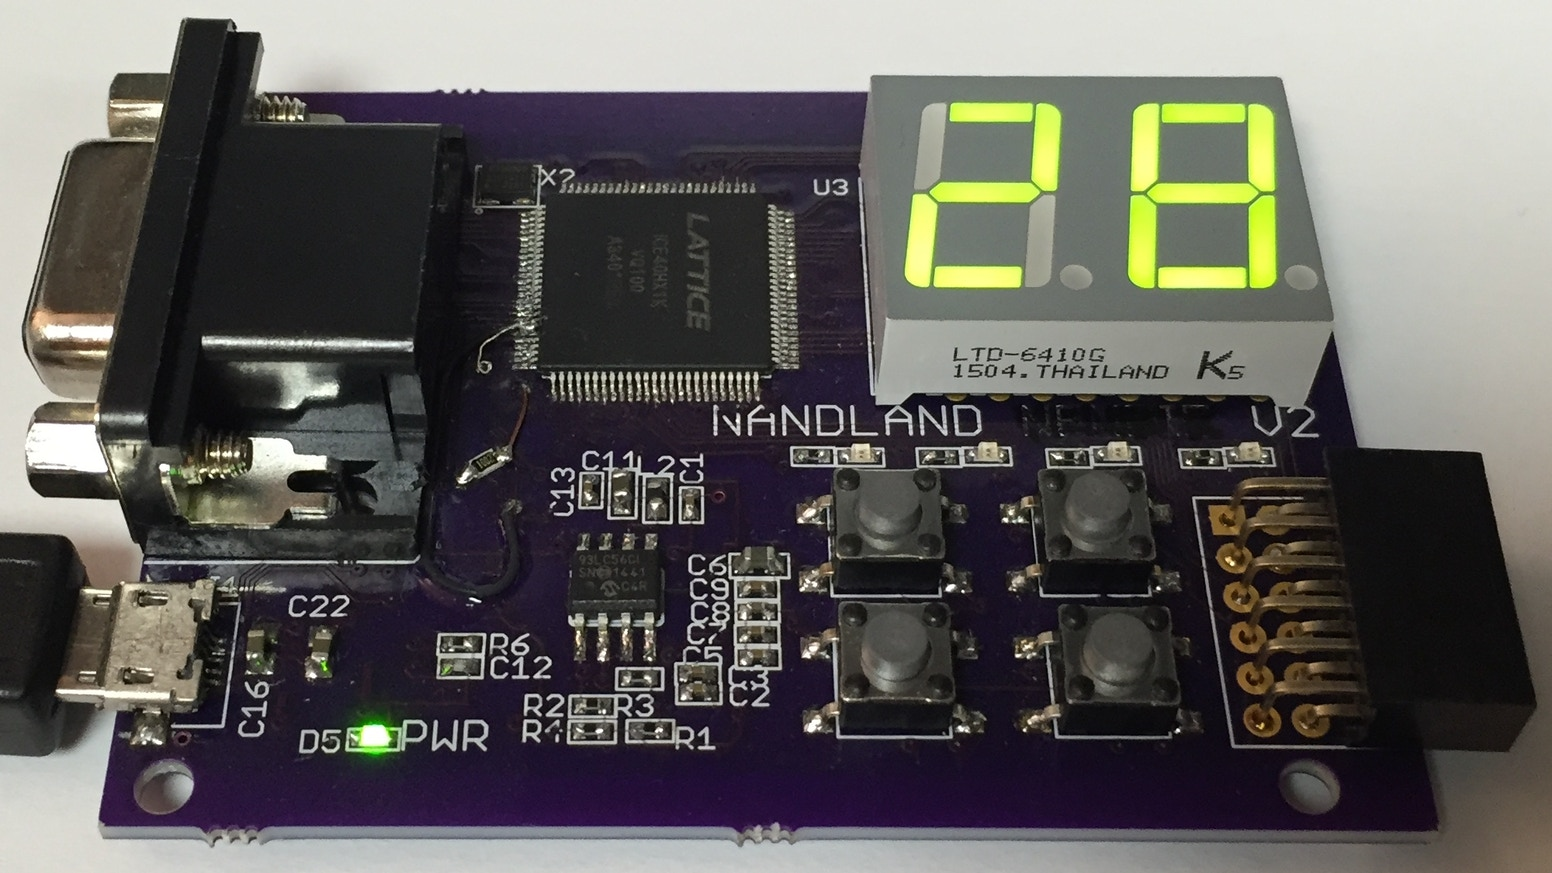 The Nandland Go Board is an inexpensive easy-to-use FPGA development board with LEDs, Buttons, VGA, and other accessories!